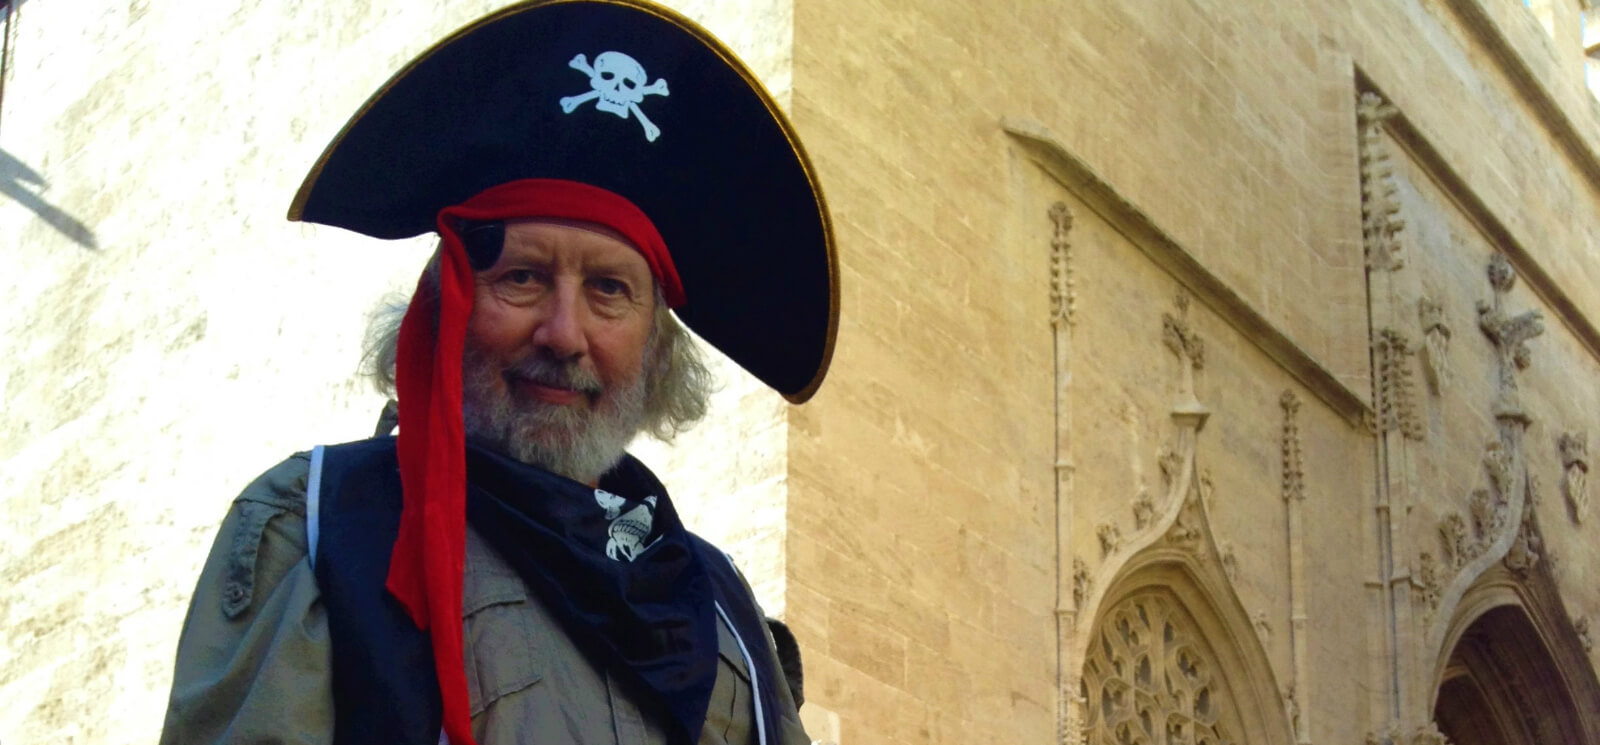 pic of pirate